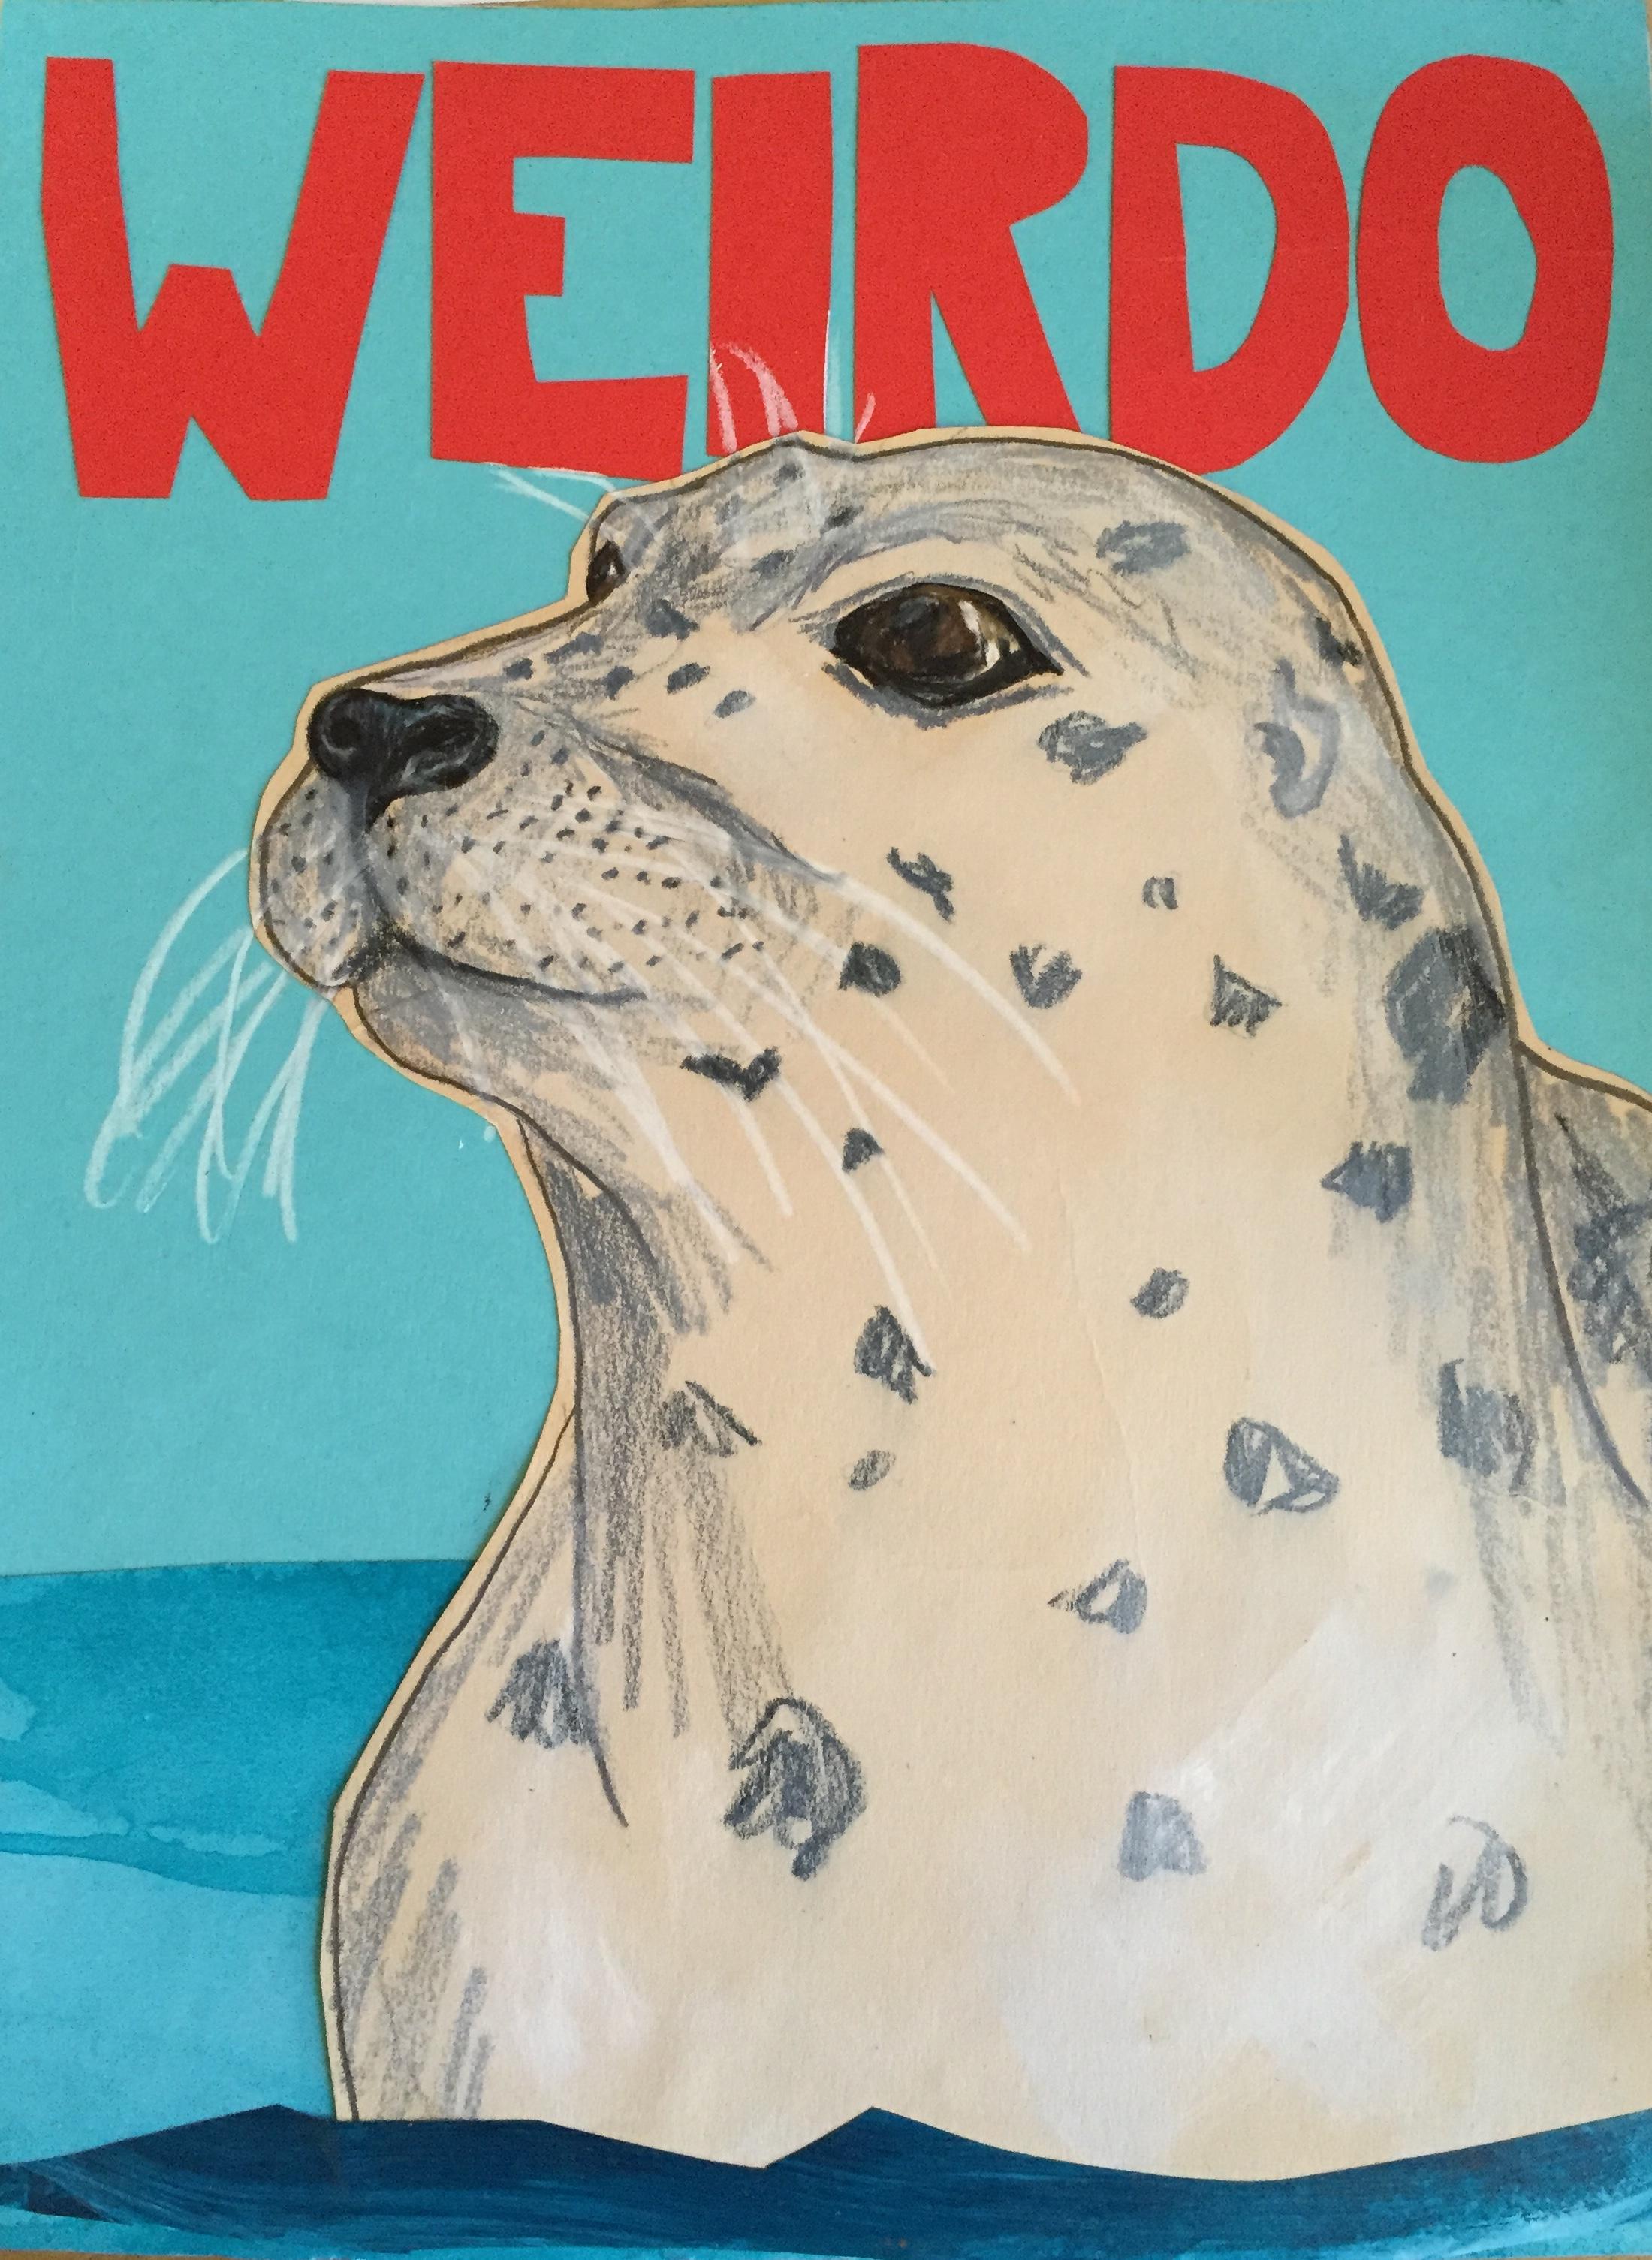 Sunde White illustration of seal to describe how wird they are